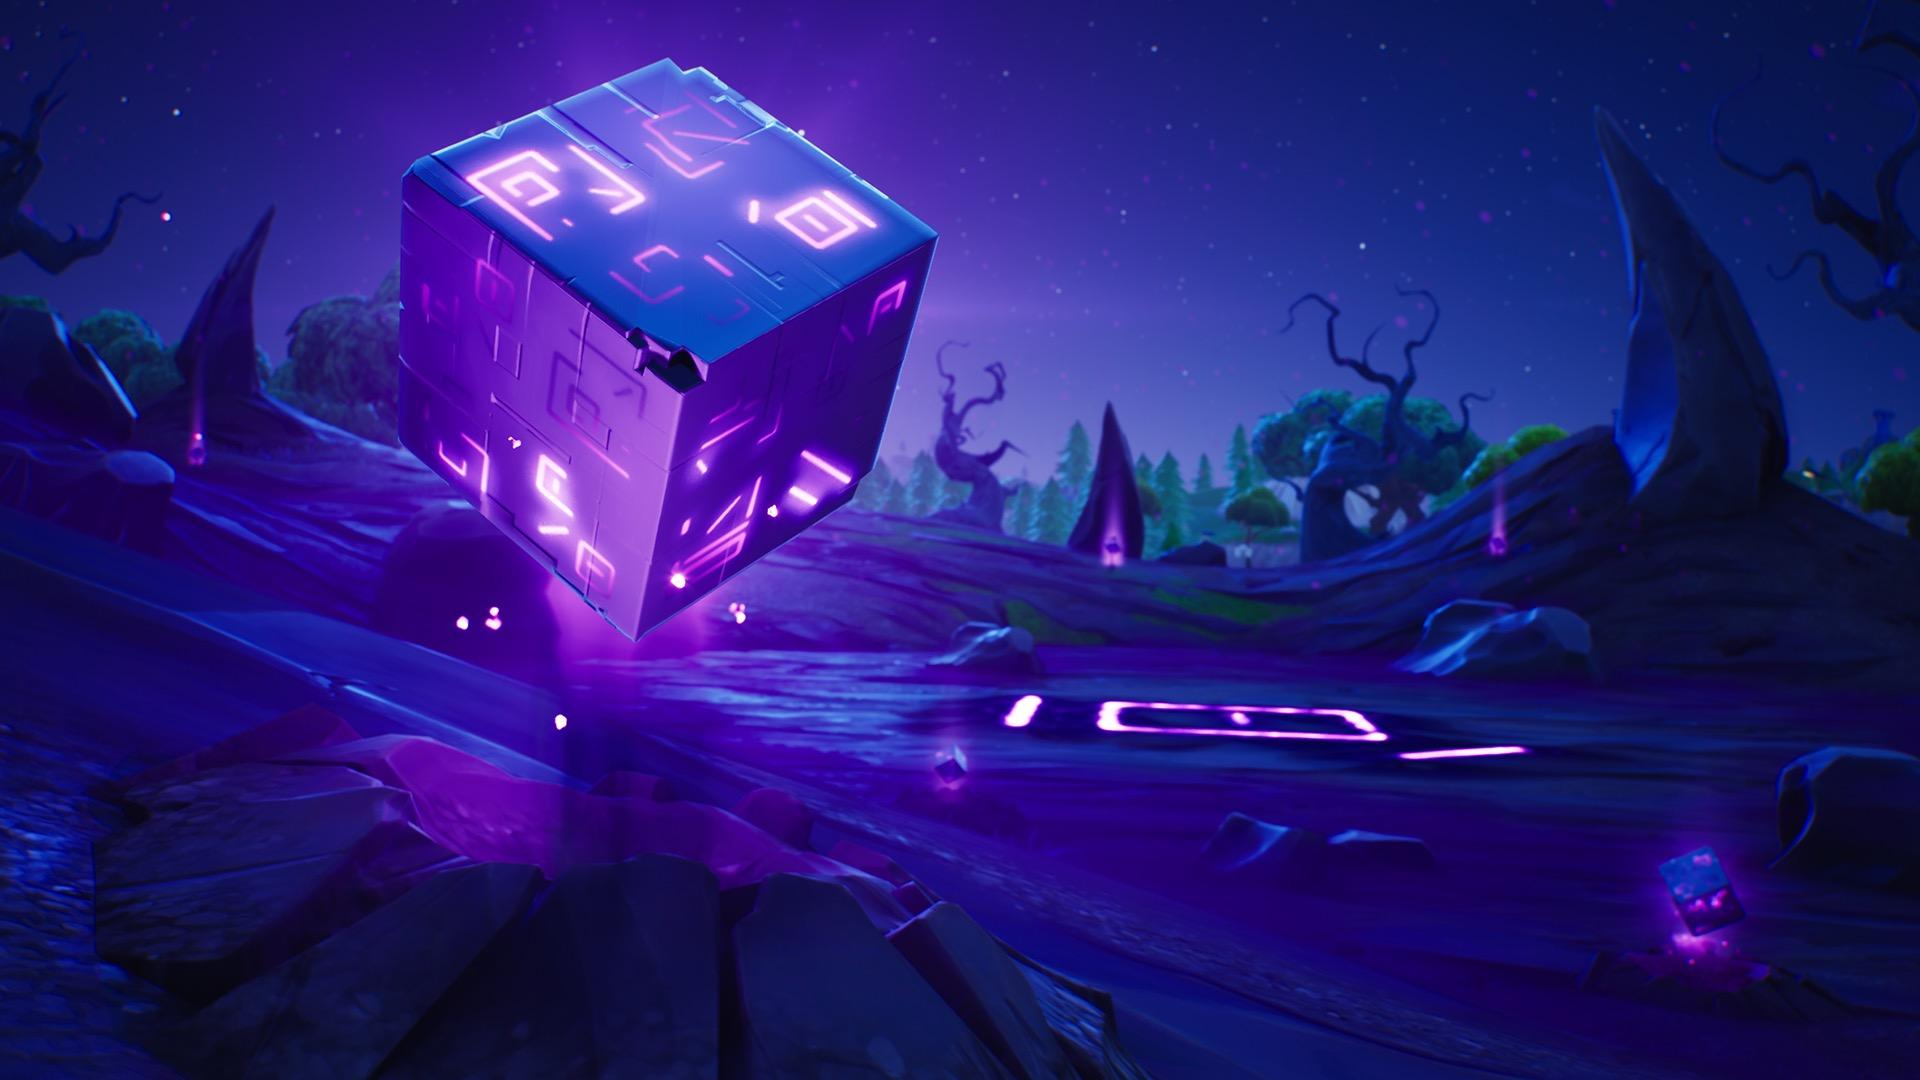 Fortnite season 6's v6.00 patch notes, map changes and spooky opening trailer